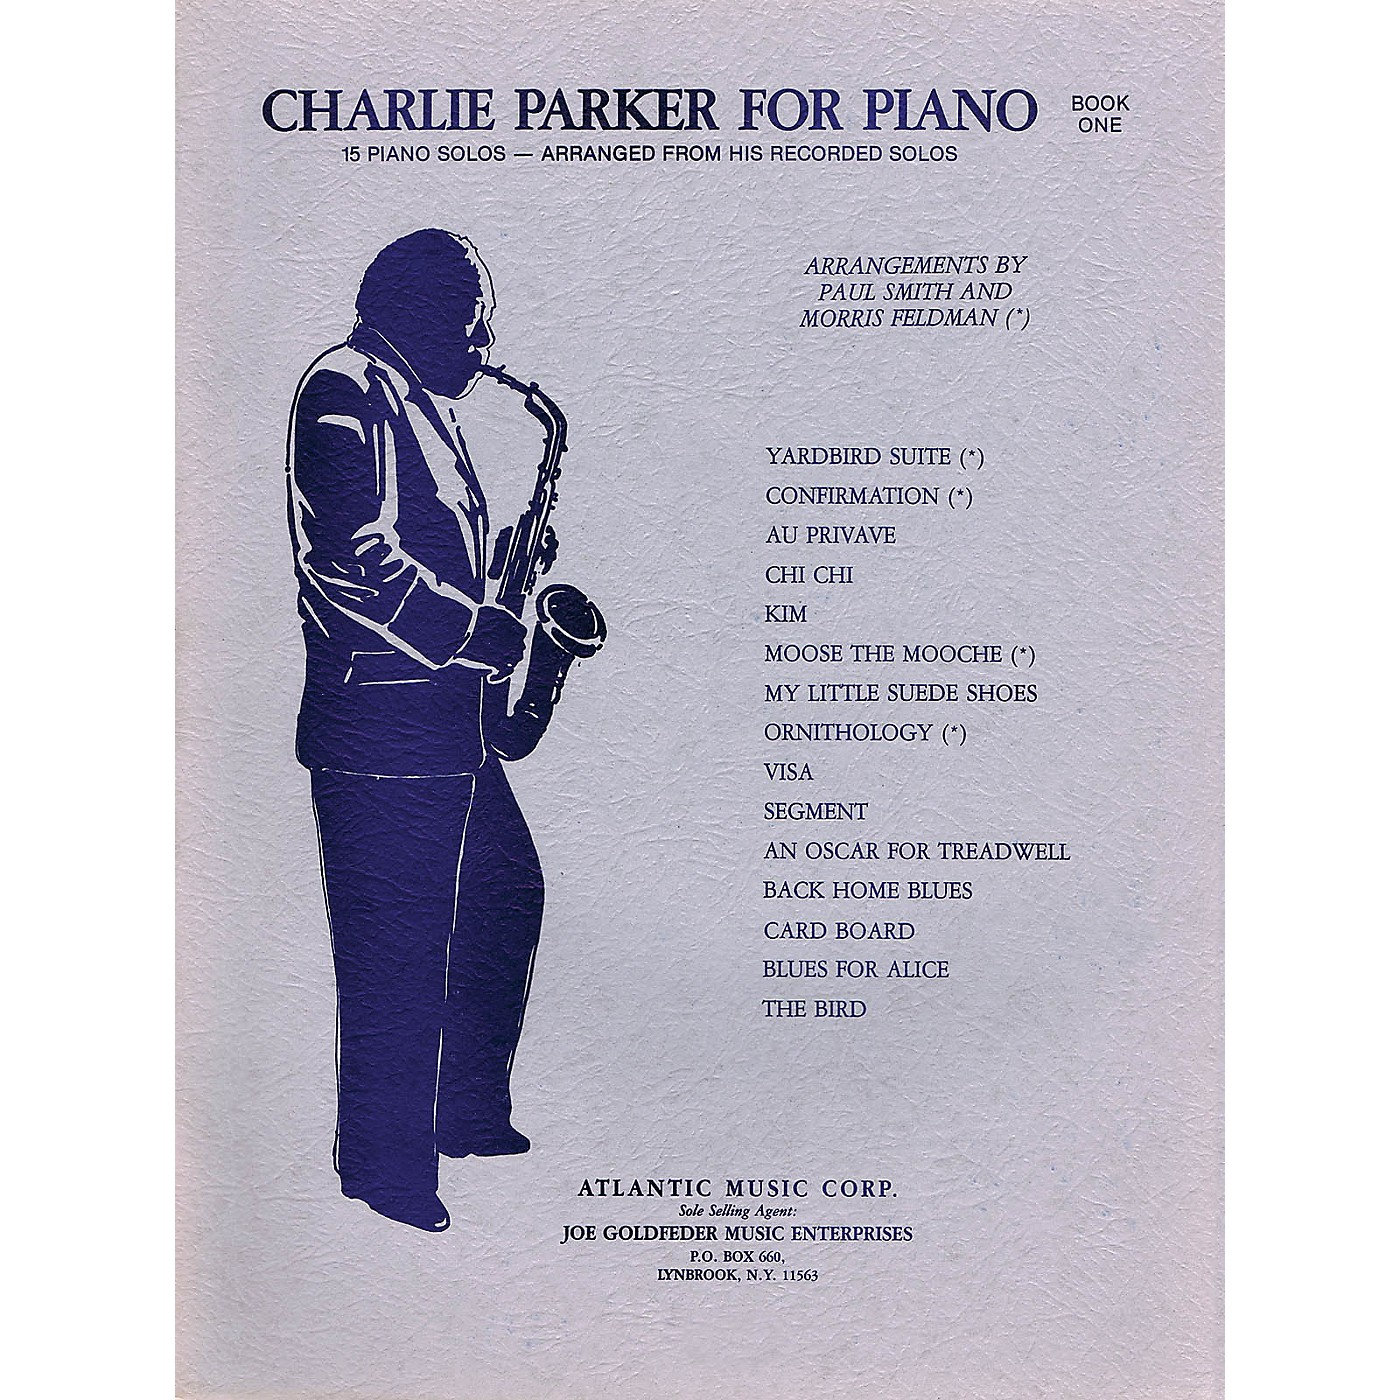 Criterion Charlie Parker for Piano - Book 1 Criterion Series Softcover Performed by Charlie Parker thumbnail